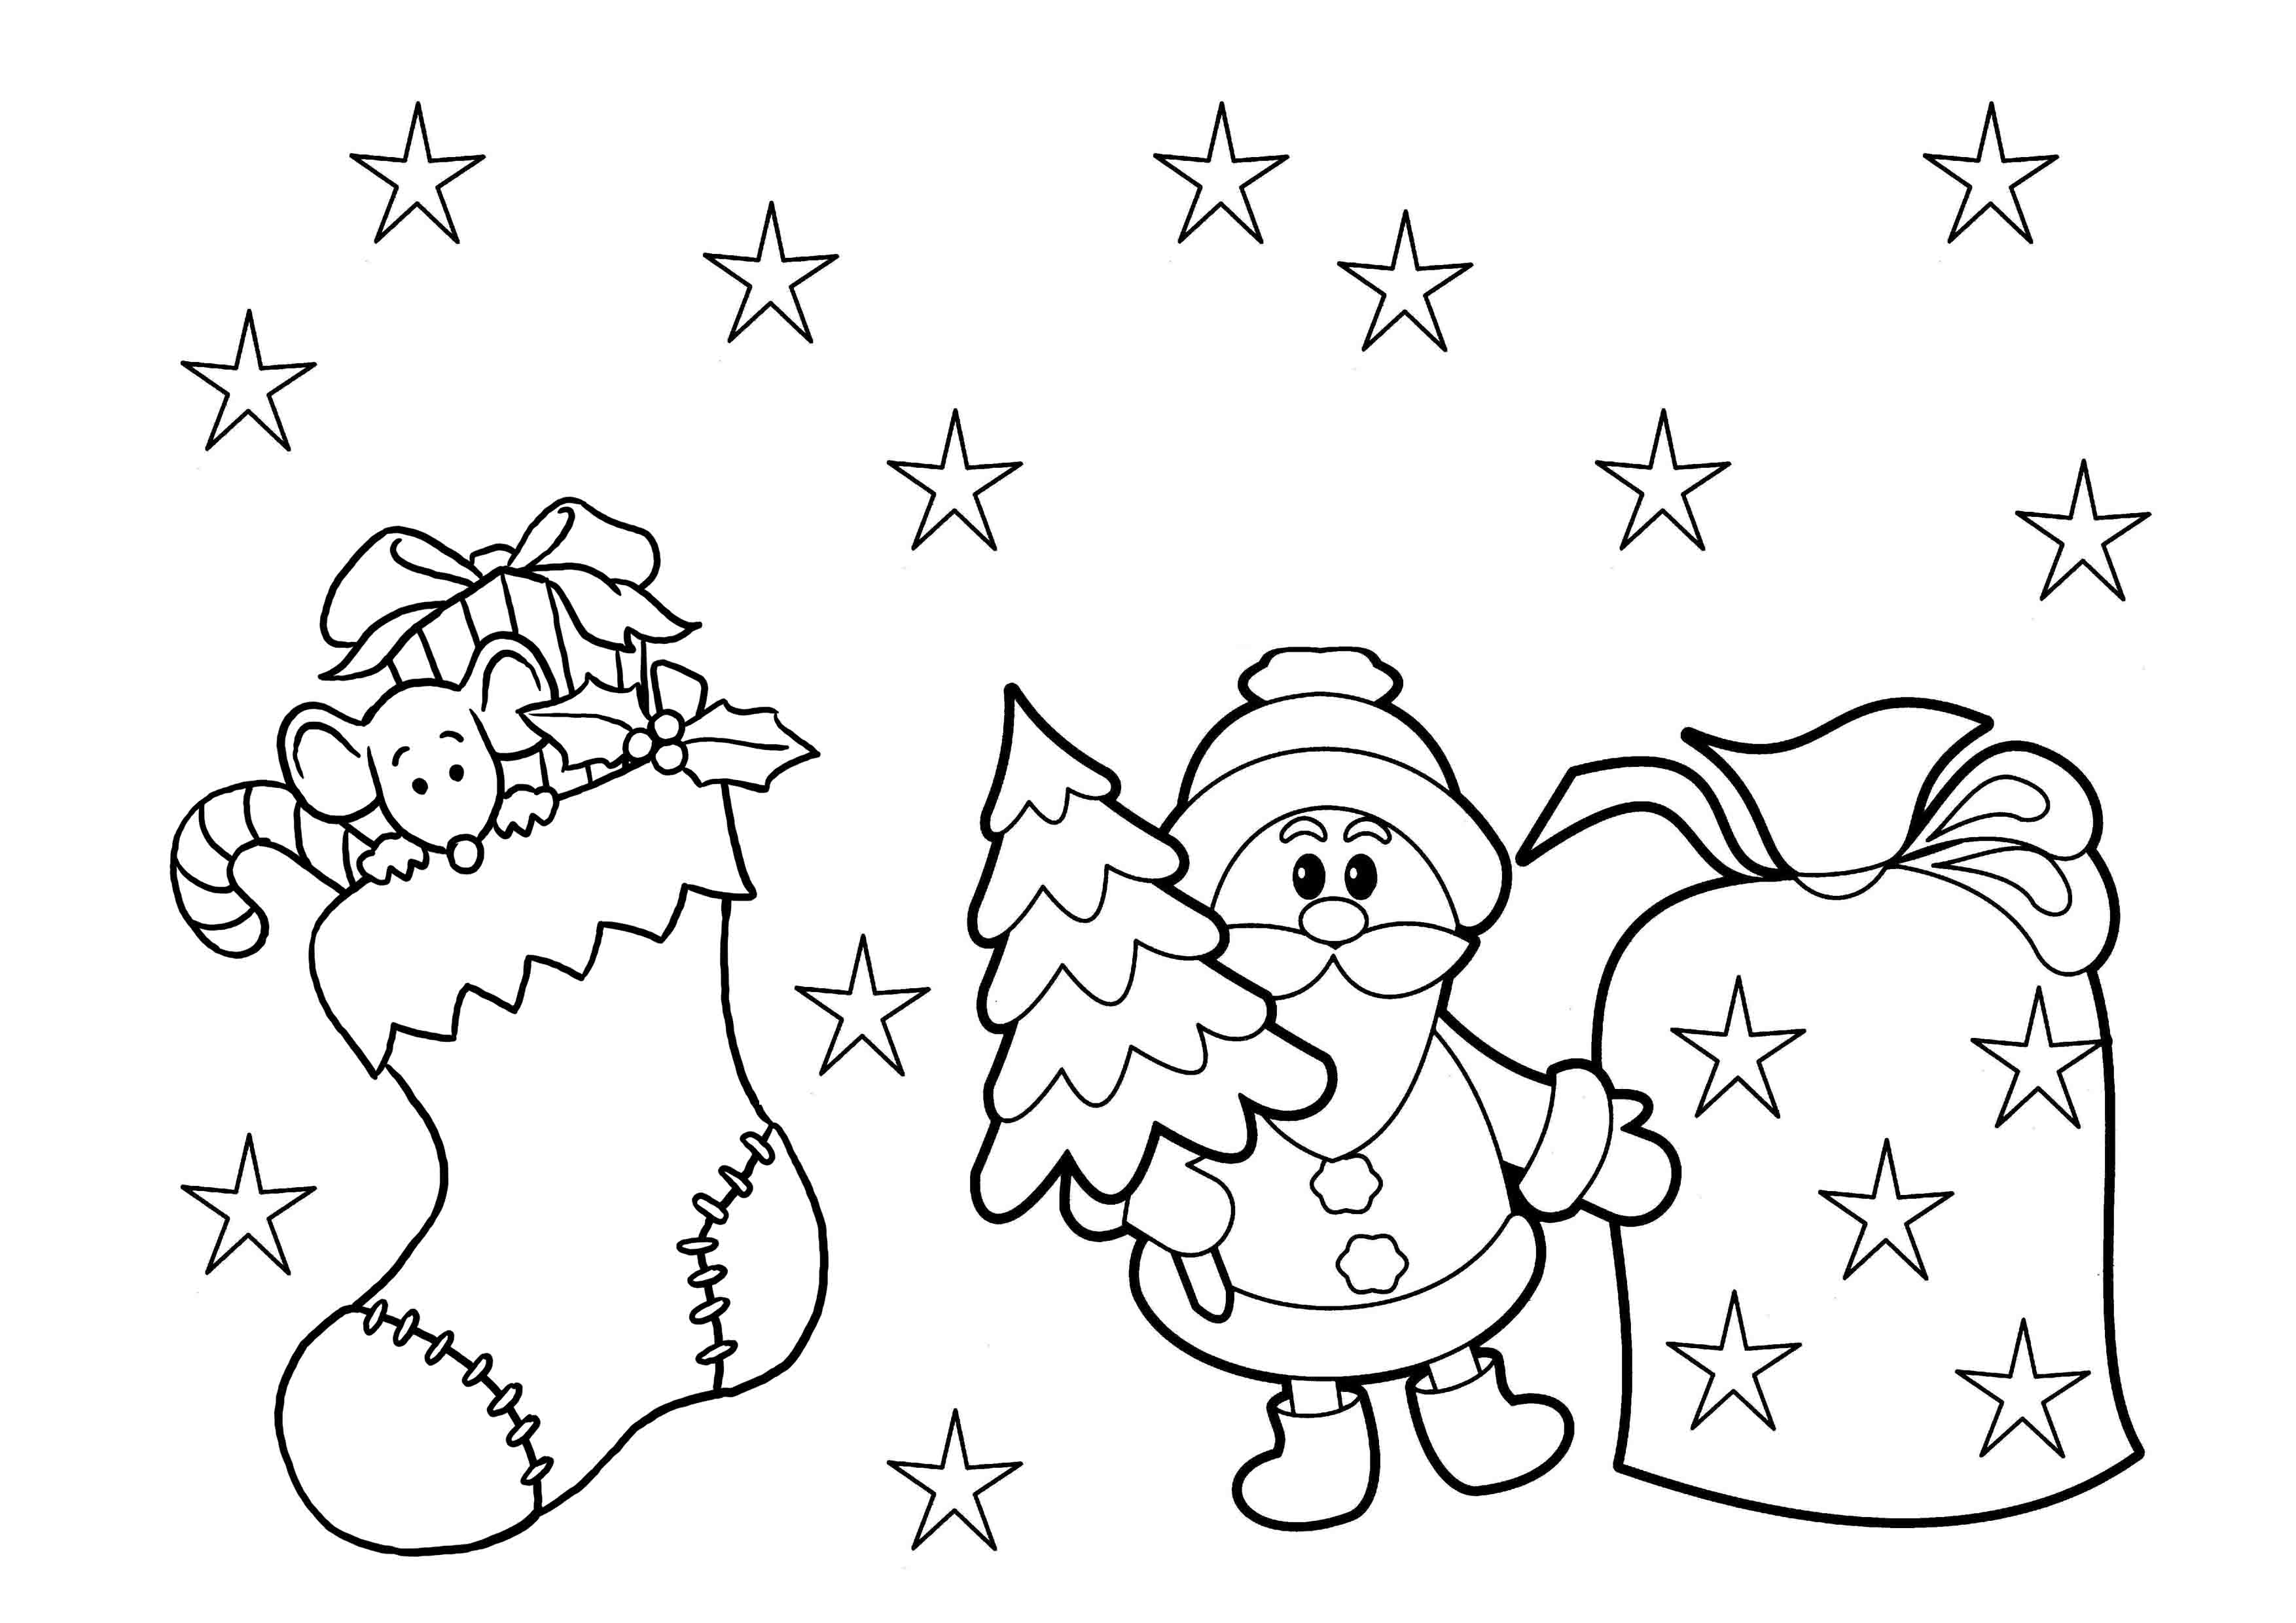 Coloring Pages : Christmas Coloring Sheets For Preschool Pages Print - Free Printable Color Sheets For Preschool